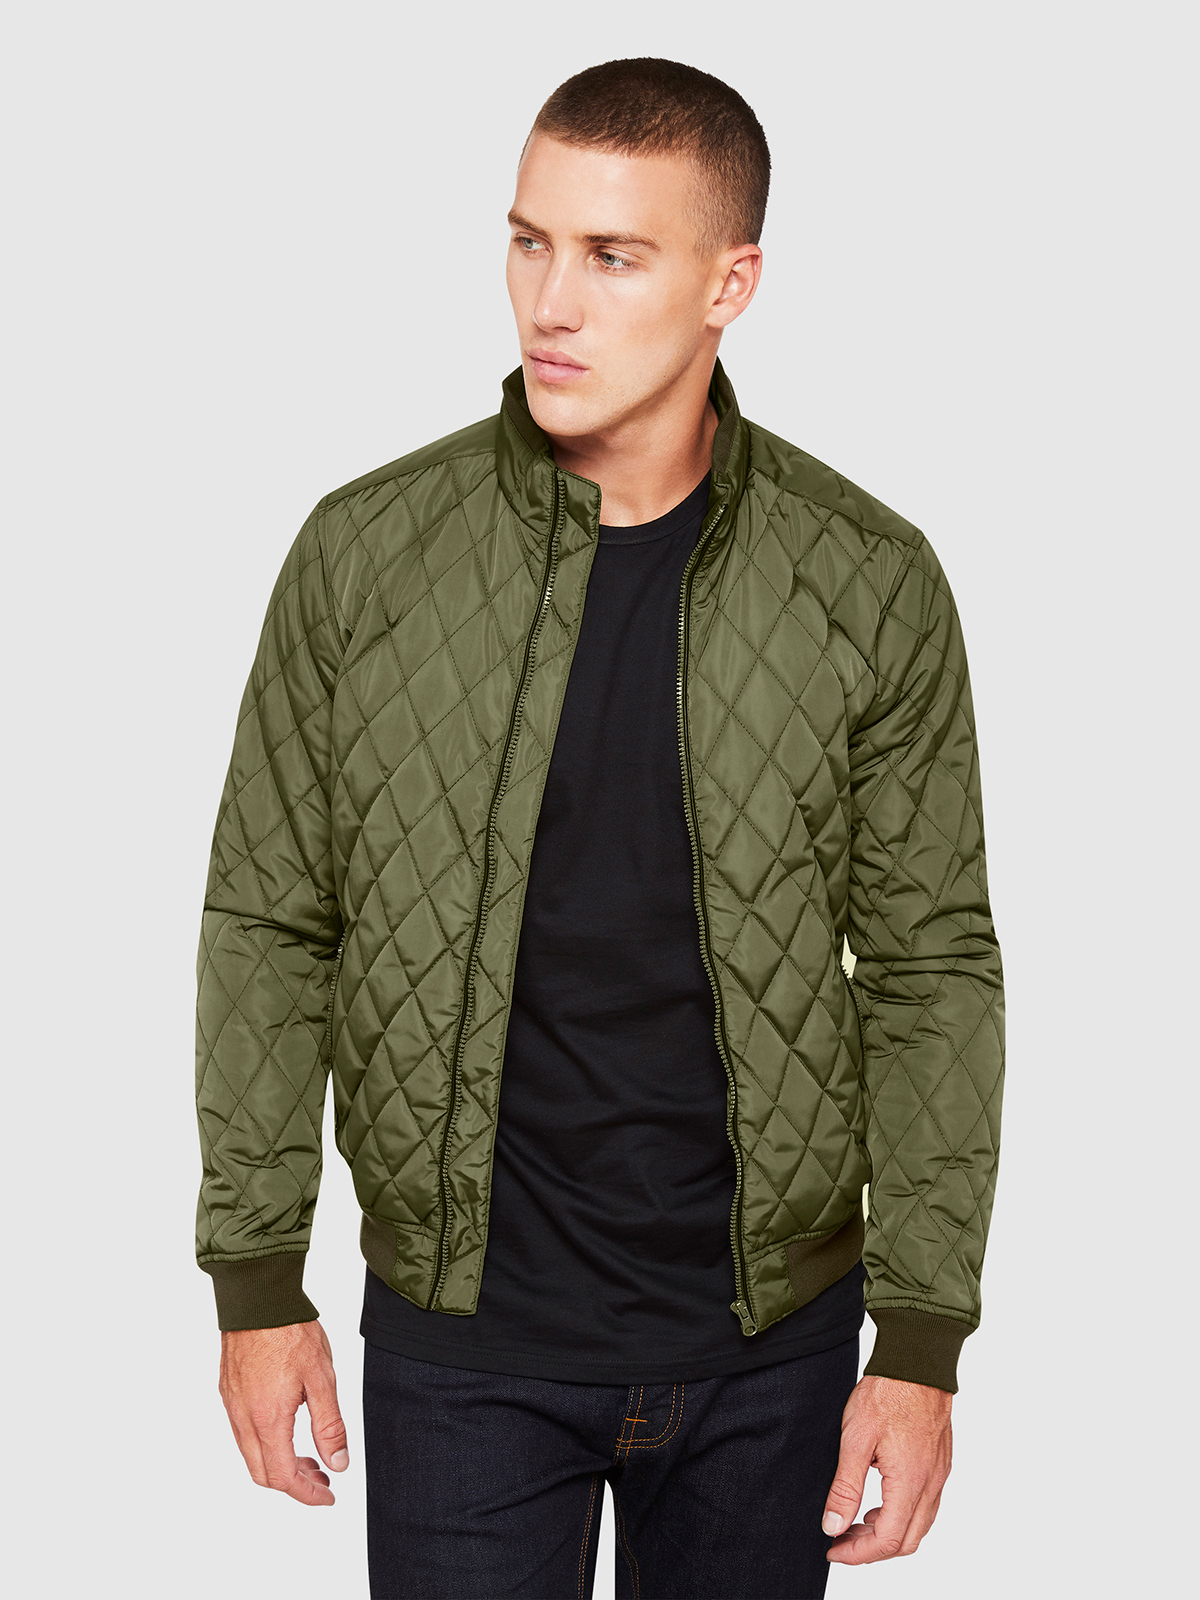 top-rated real attractive & durable store Details about BENJAMIN QUILTED PUFFA JACKET X MENS JACKETS AND COATS